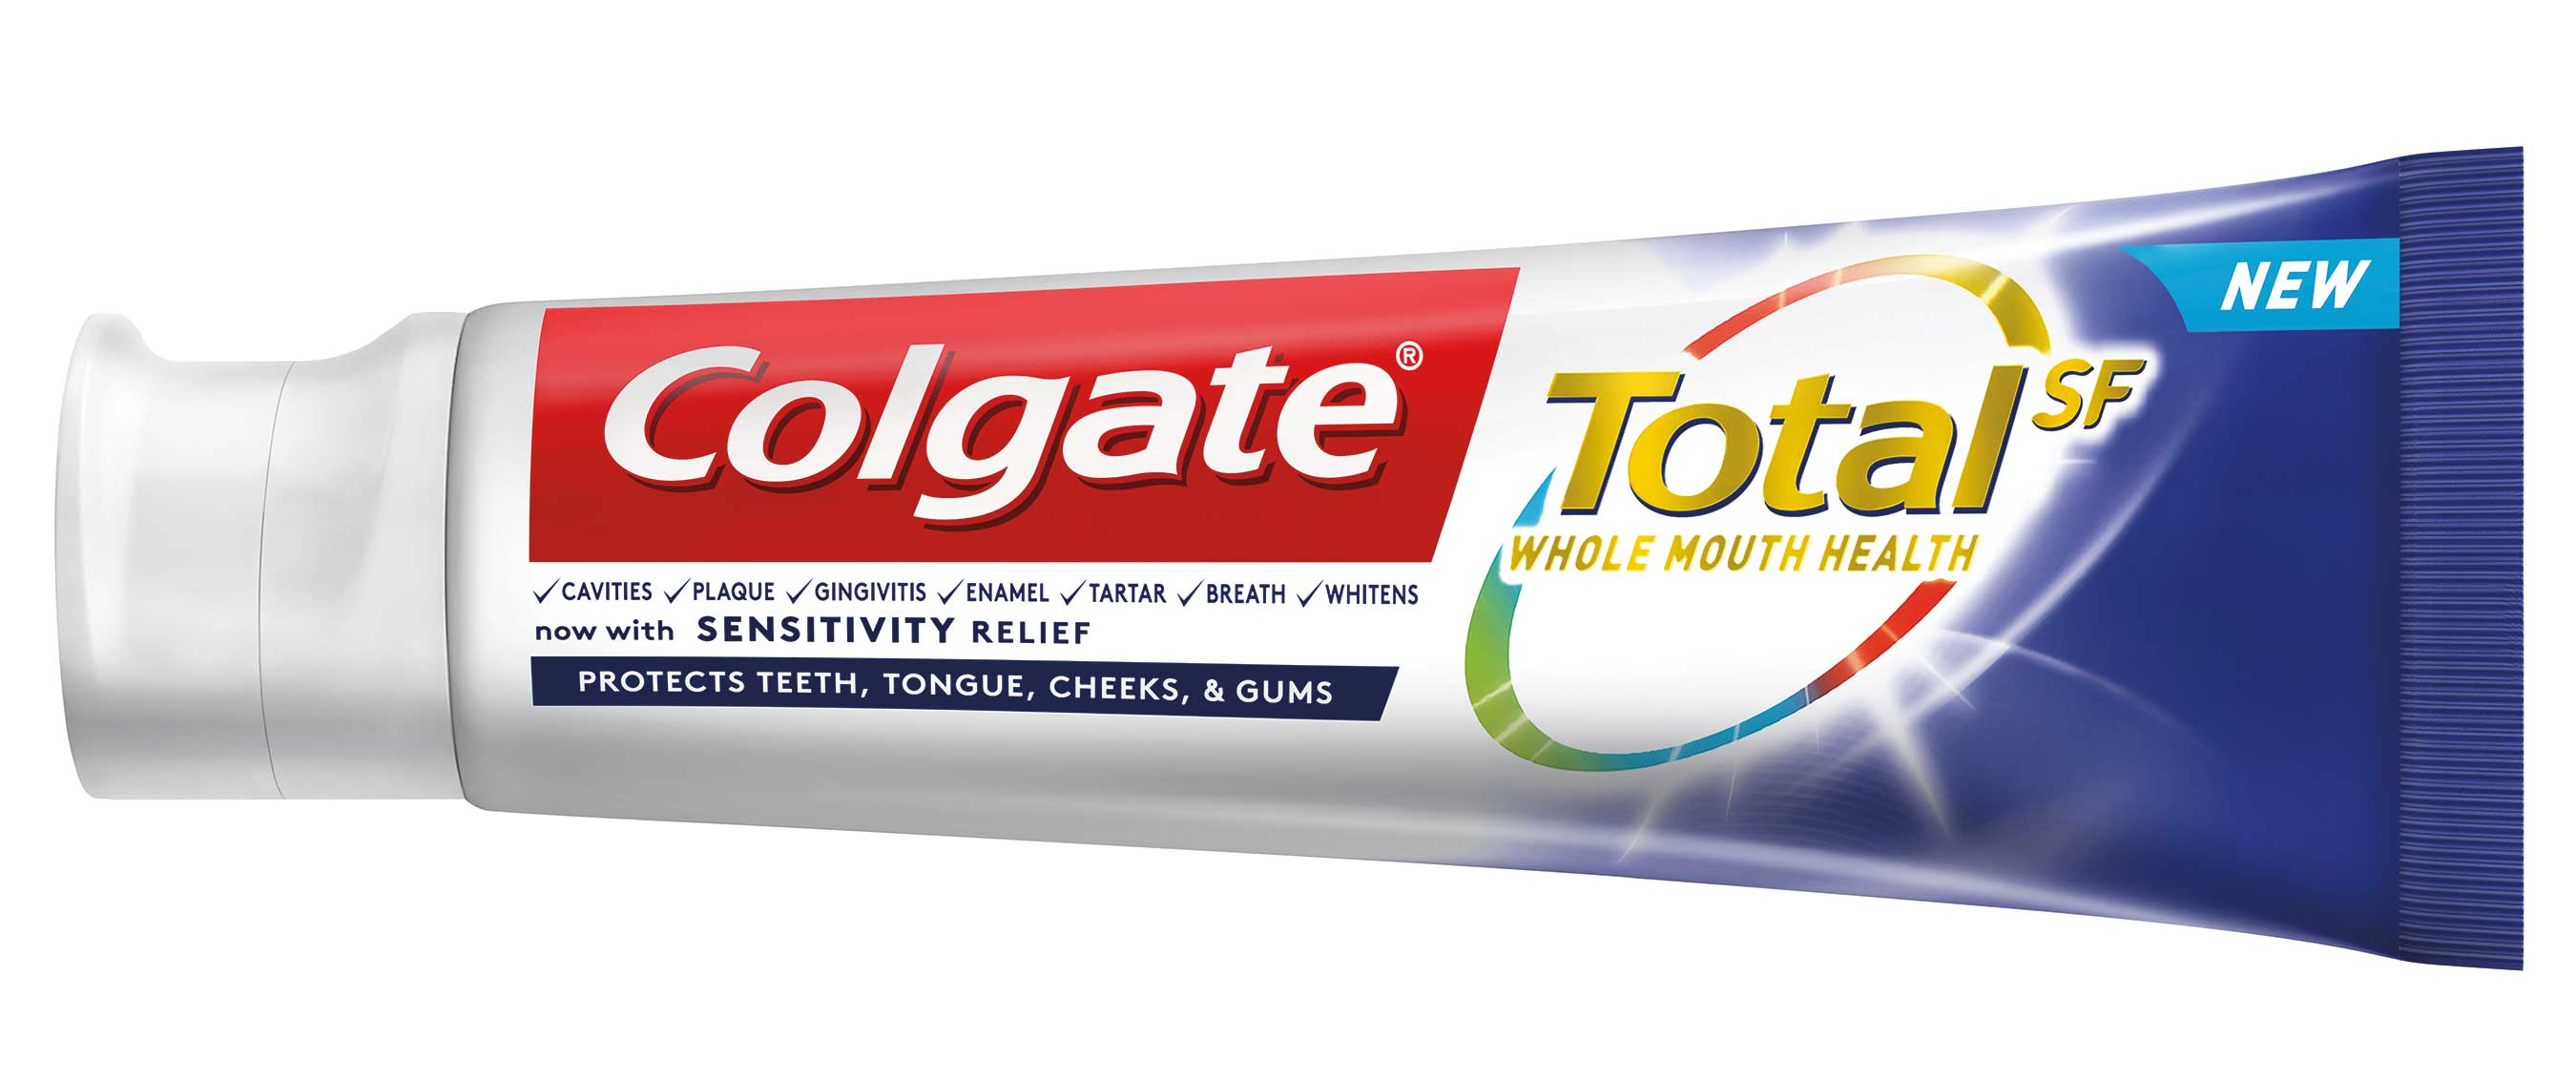 history of colgate